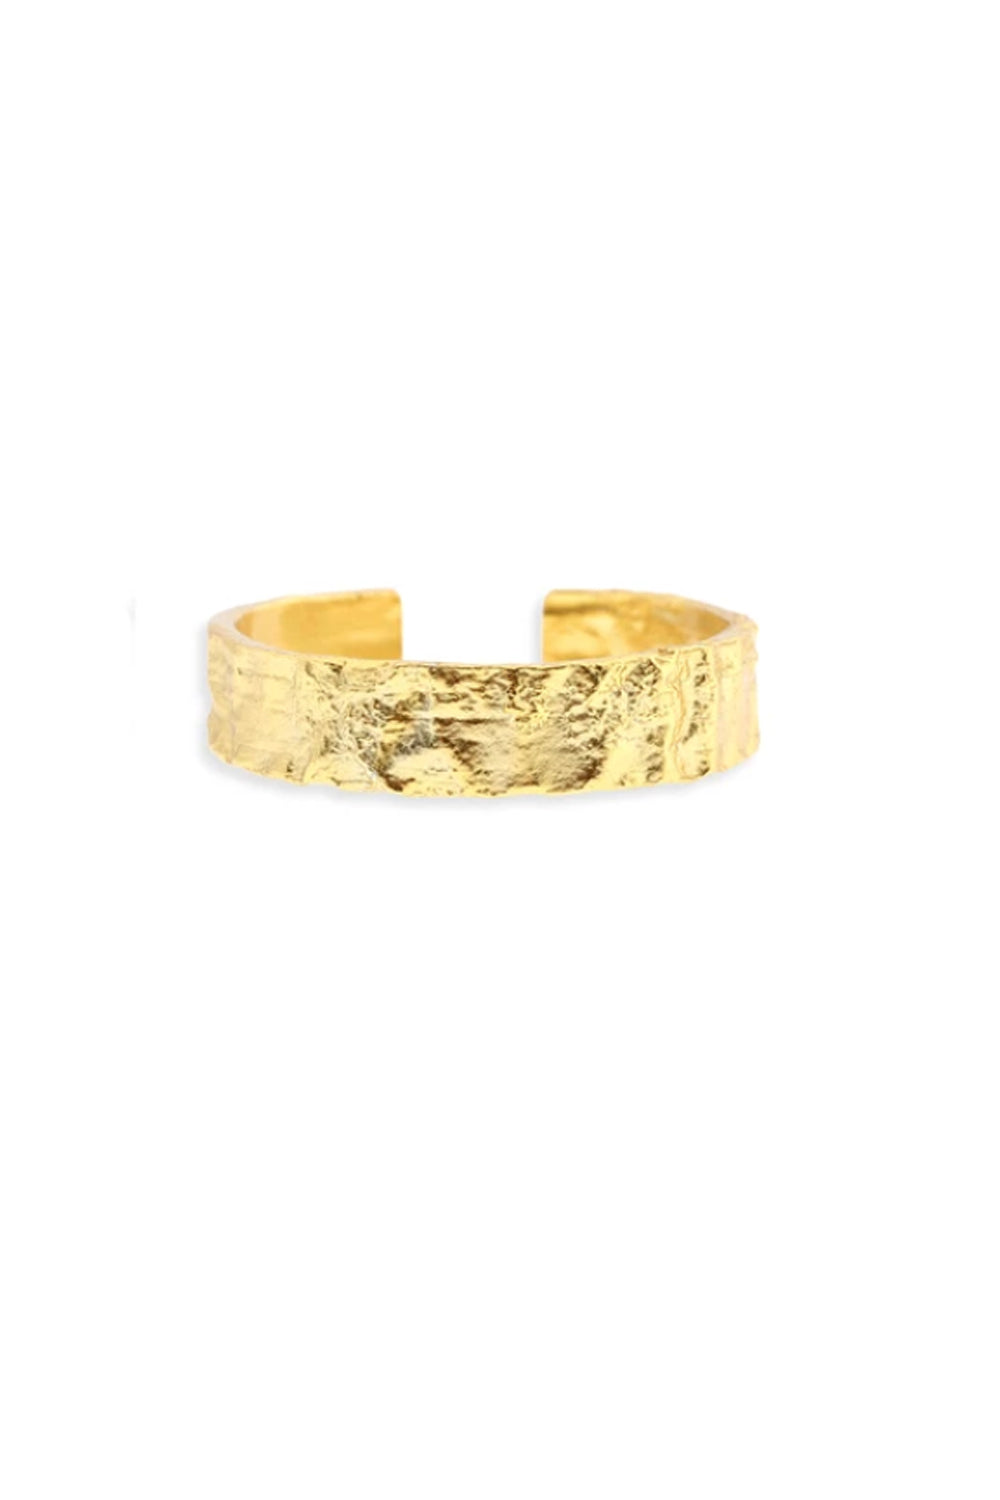 ARMS OF EVE - Eros Gold Textured Ring - Medium - Australian Fashion and Accessories Boutique - Faid Store